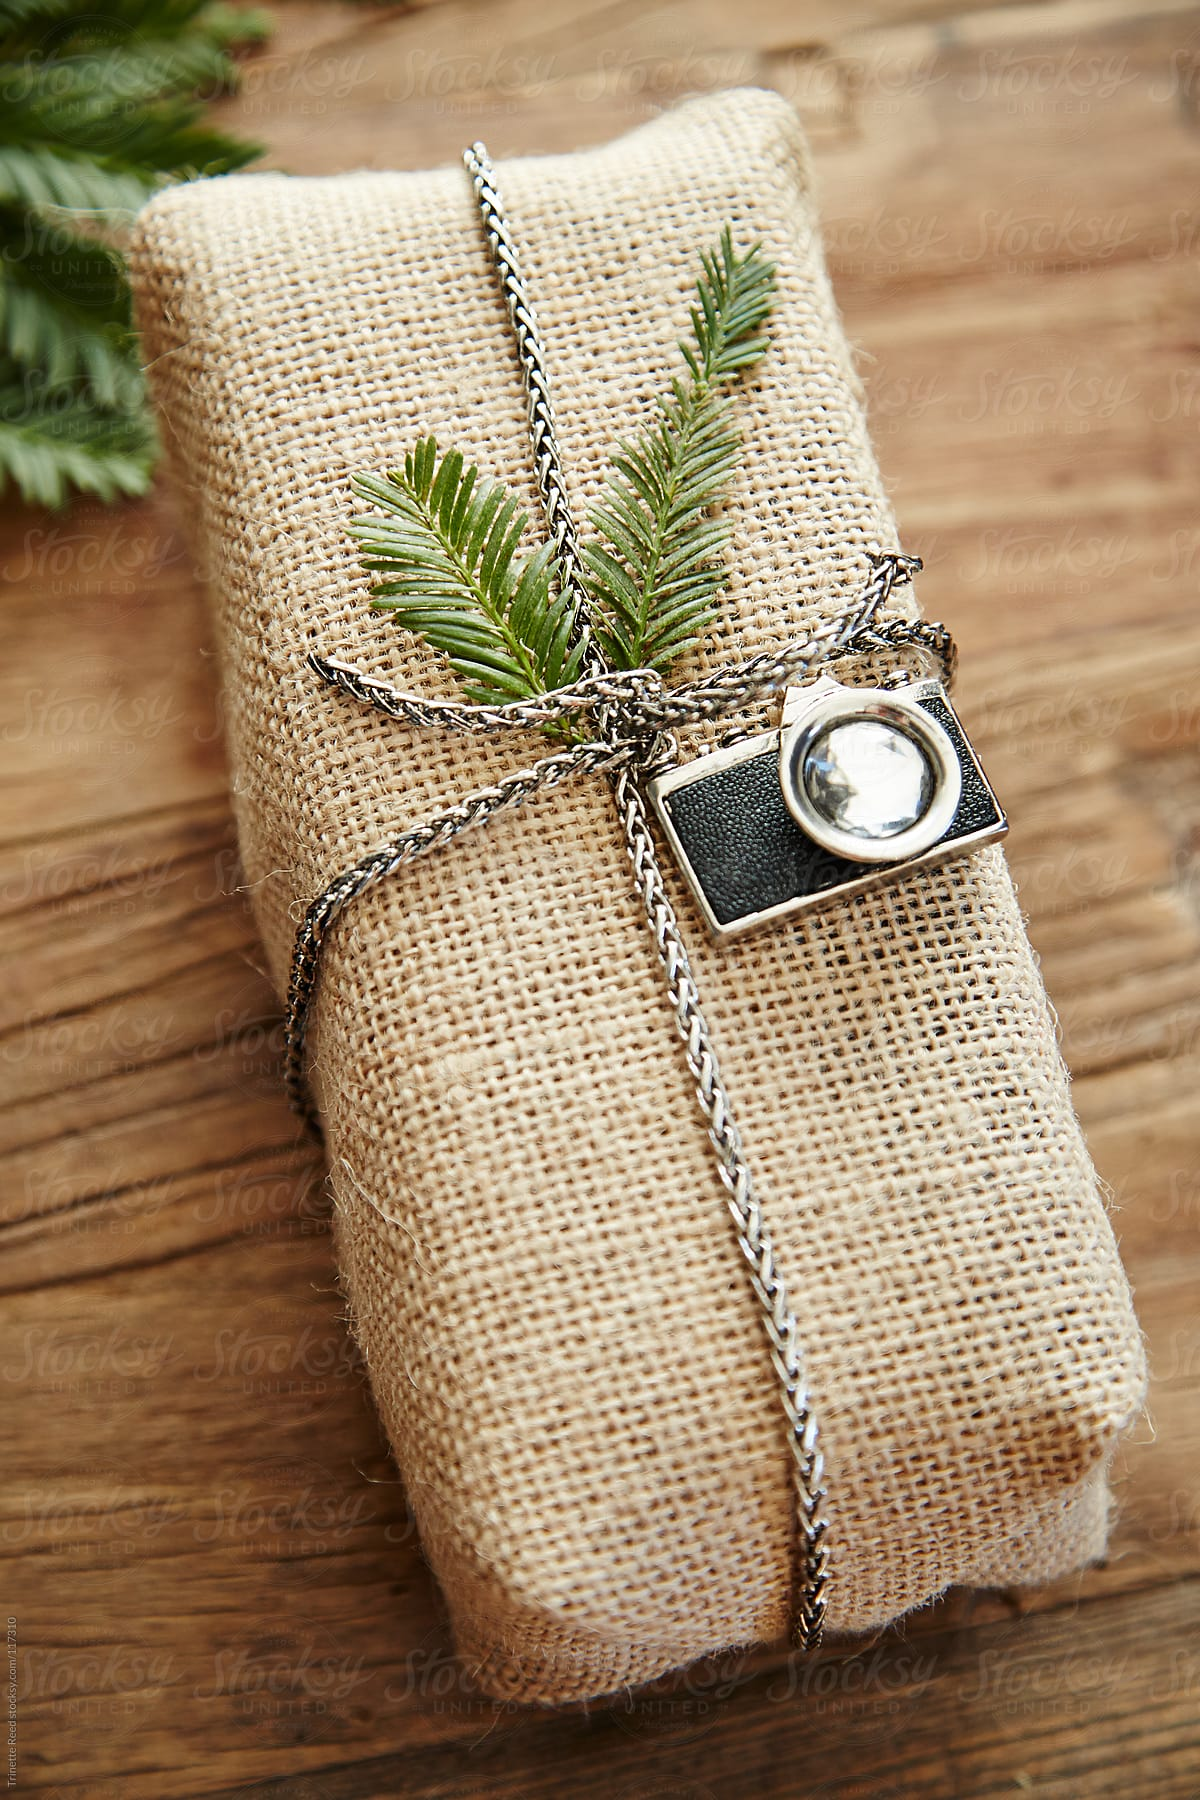 Hipster Gift With Burlap Wrapping Paper And Vintage Camera